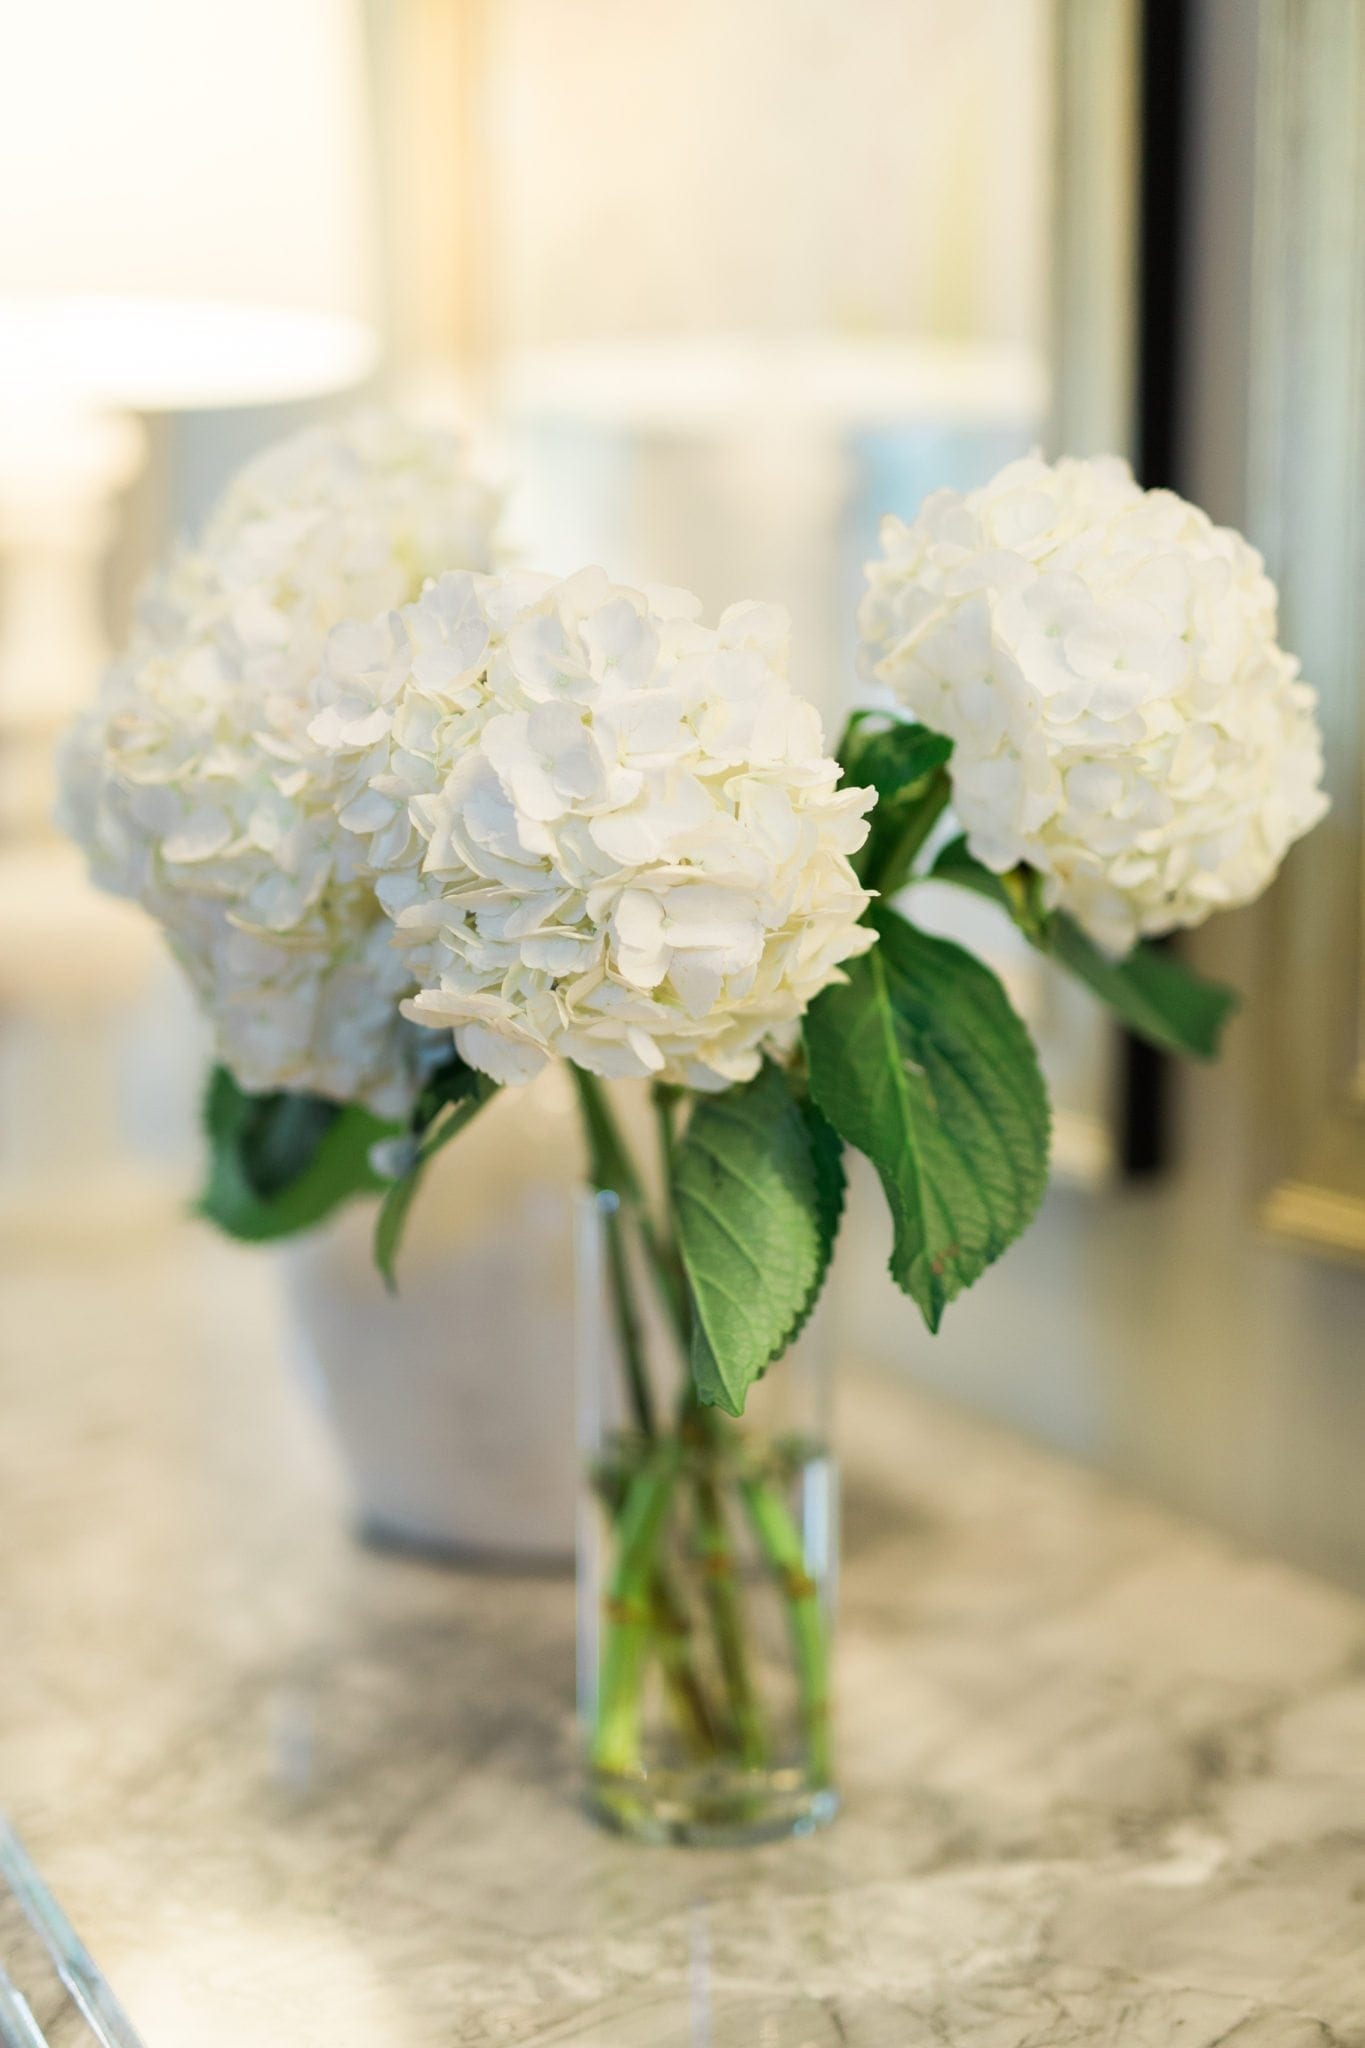 Easy tips to keep your hydrangeas alive longer.